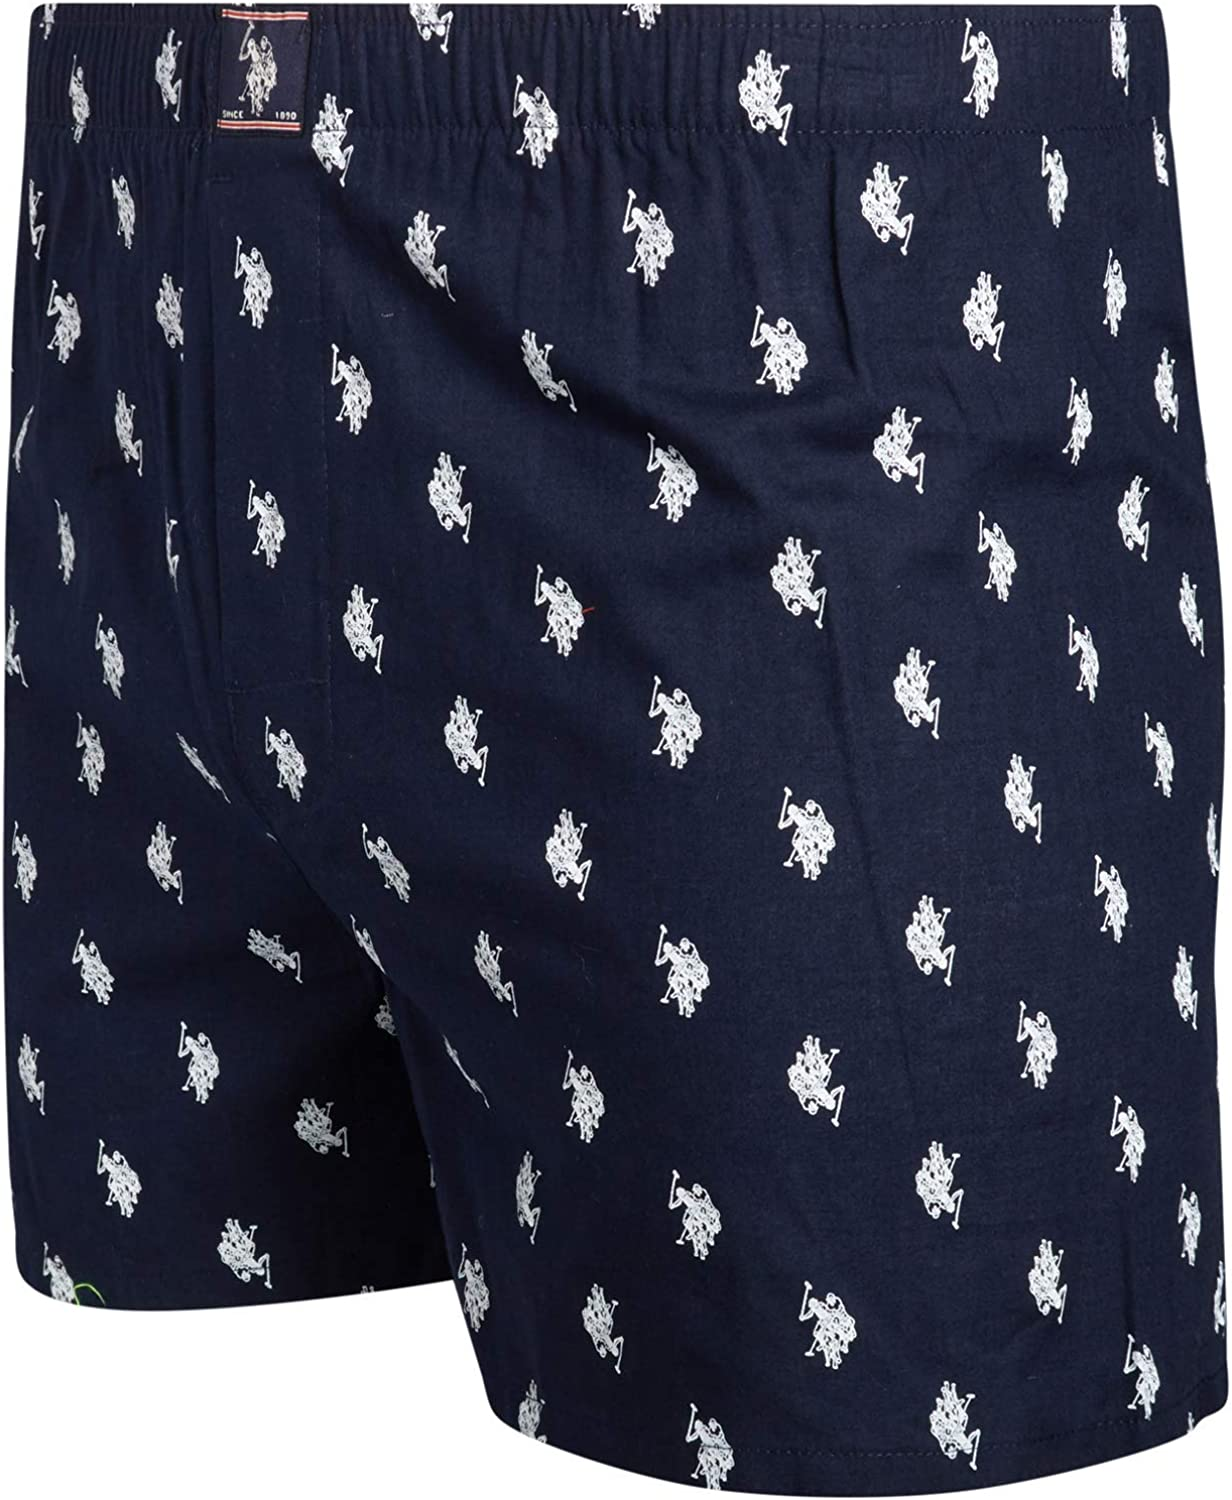 U.S Mens Woven Boxer Underwear with Functional Fly Polo Assn 8 Pack